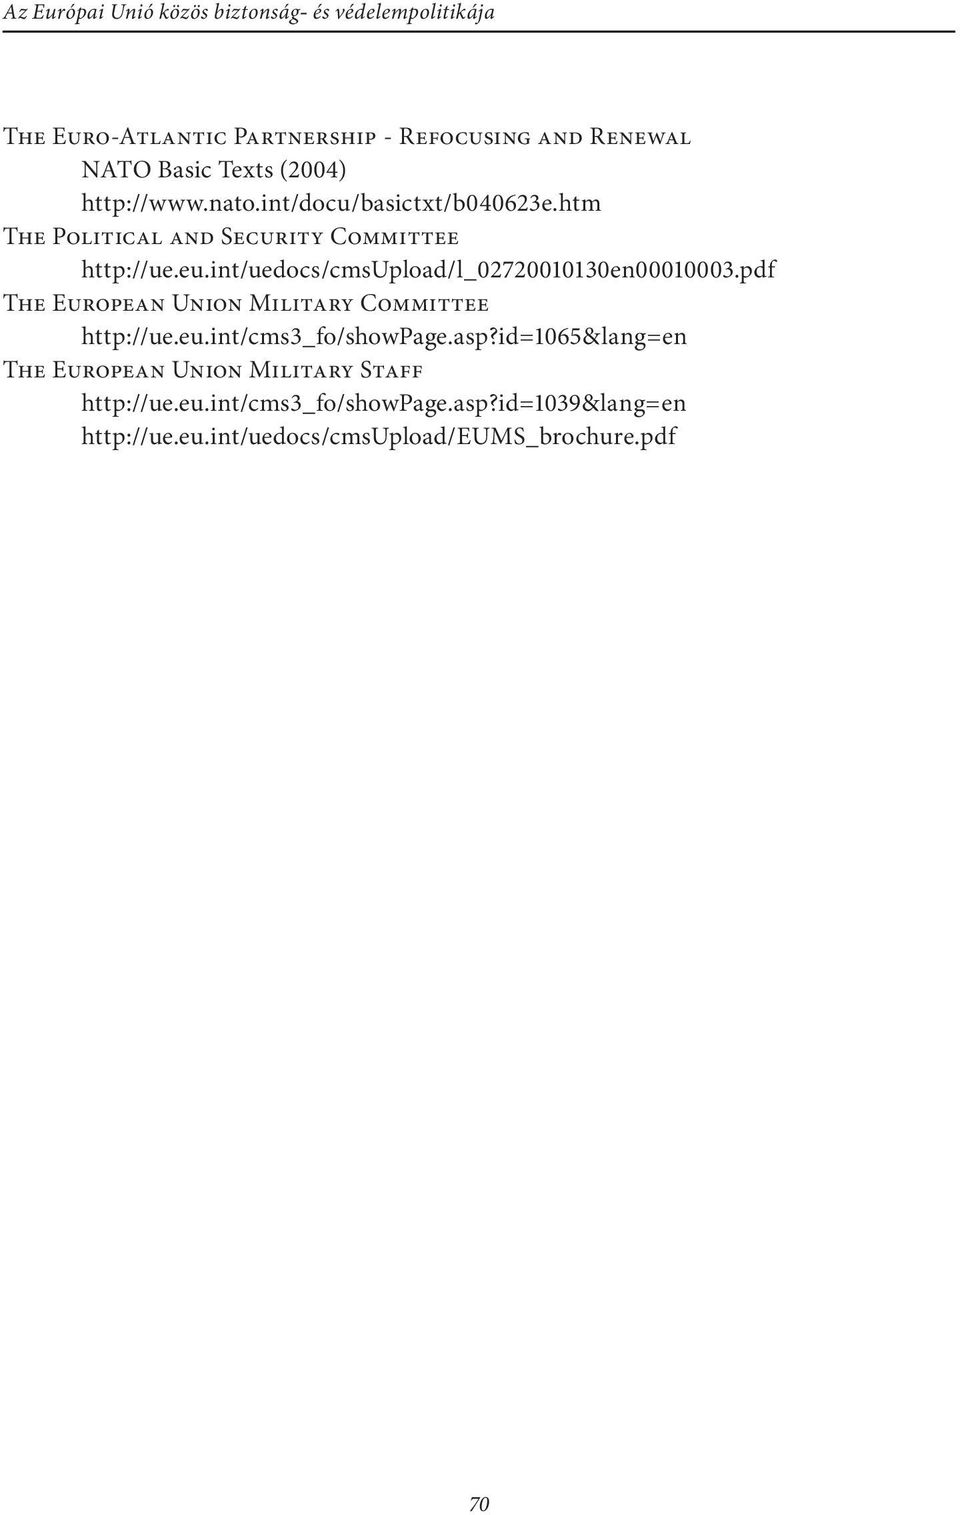 int/uedocs/cmsupload/l_02720010130en00010003.pdf THE EUROPEAN UNION MILITARY COMMITTEE http://ue.eu.